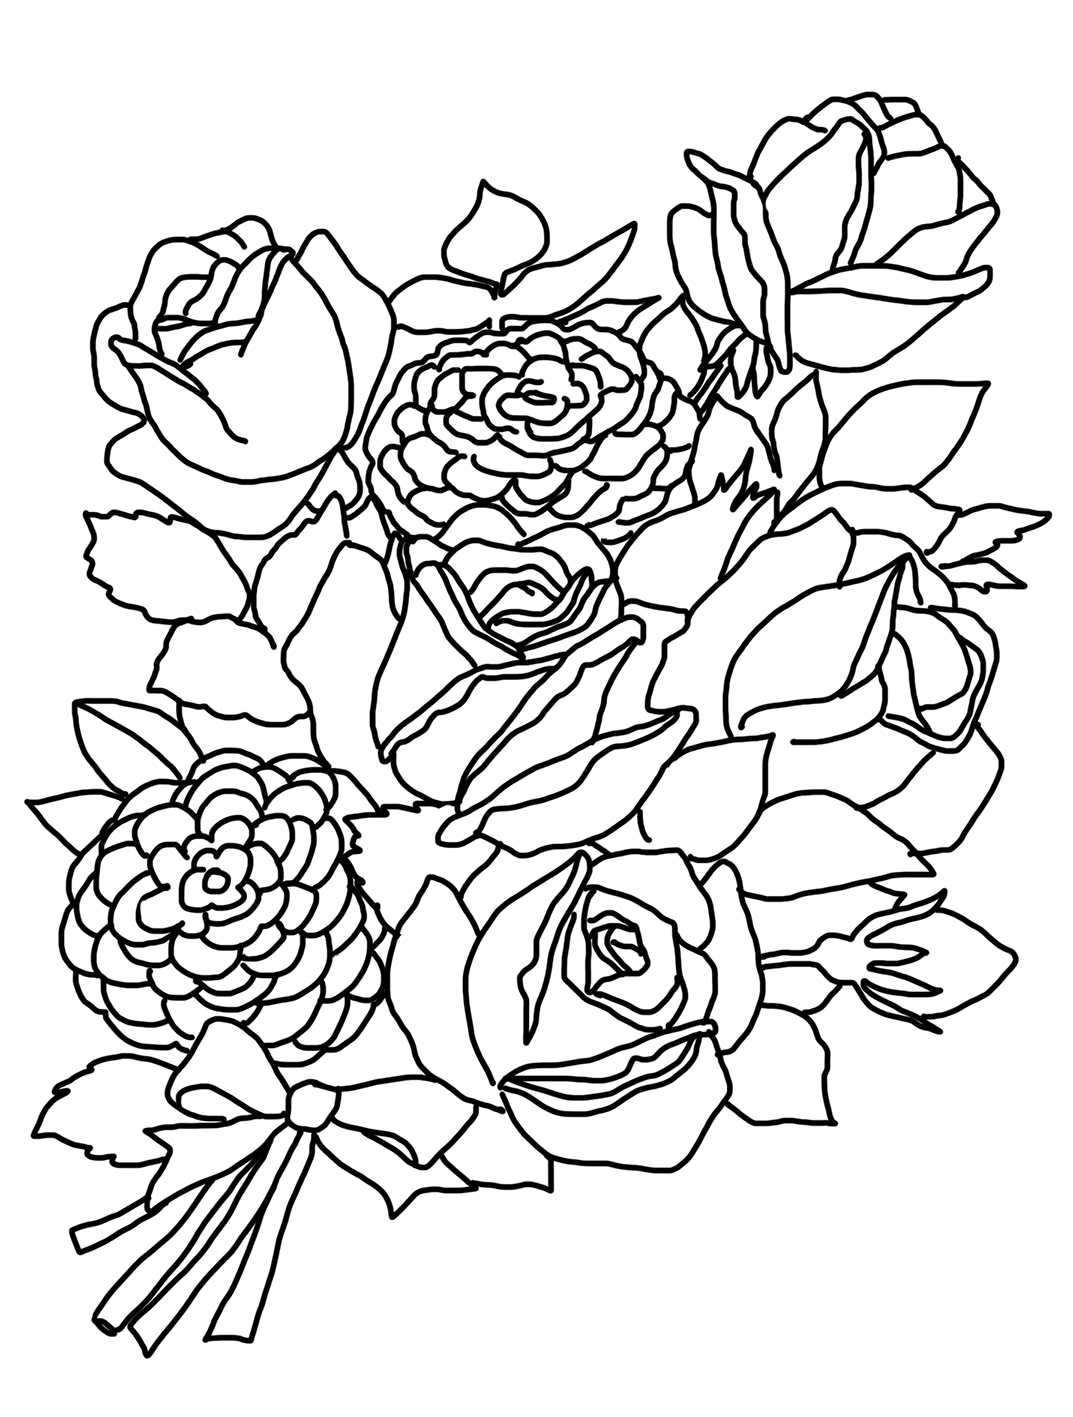 coloring flower free printable flower coloring pages for kids cool2bkids coloring flower 1 3